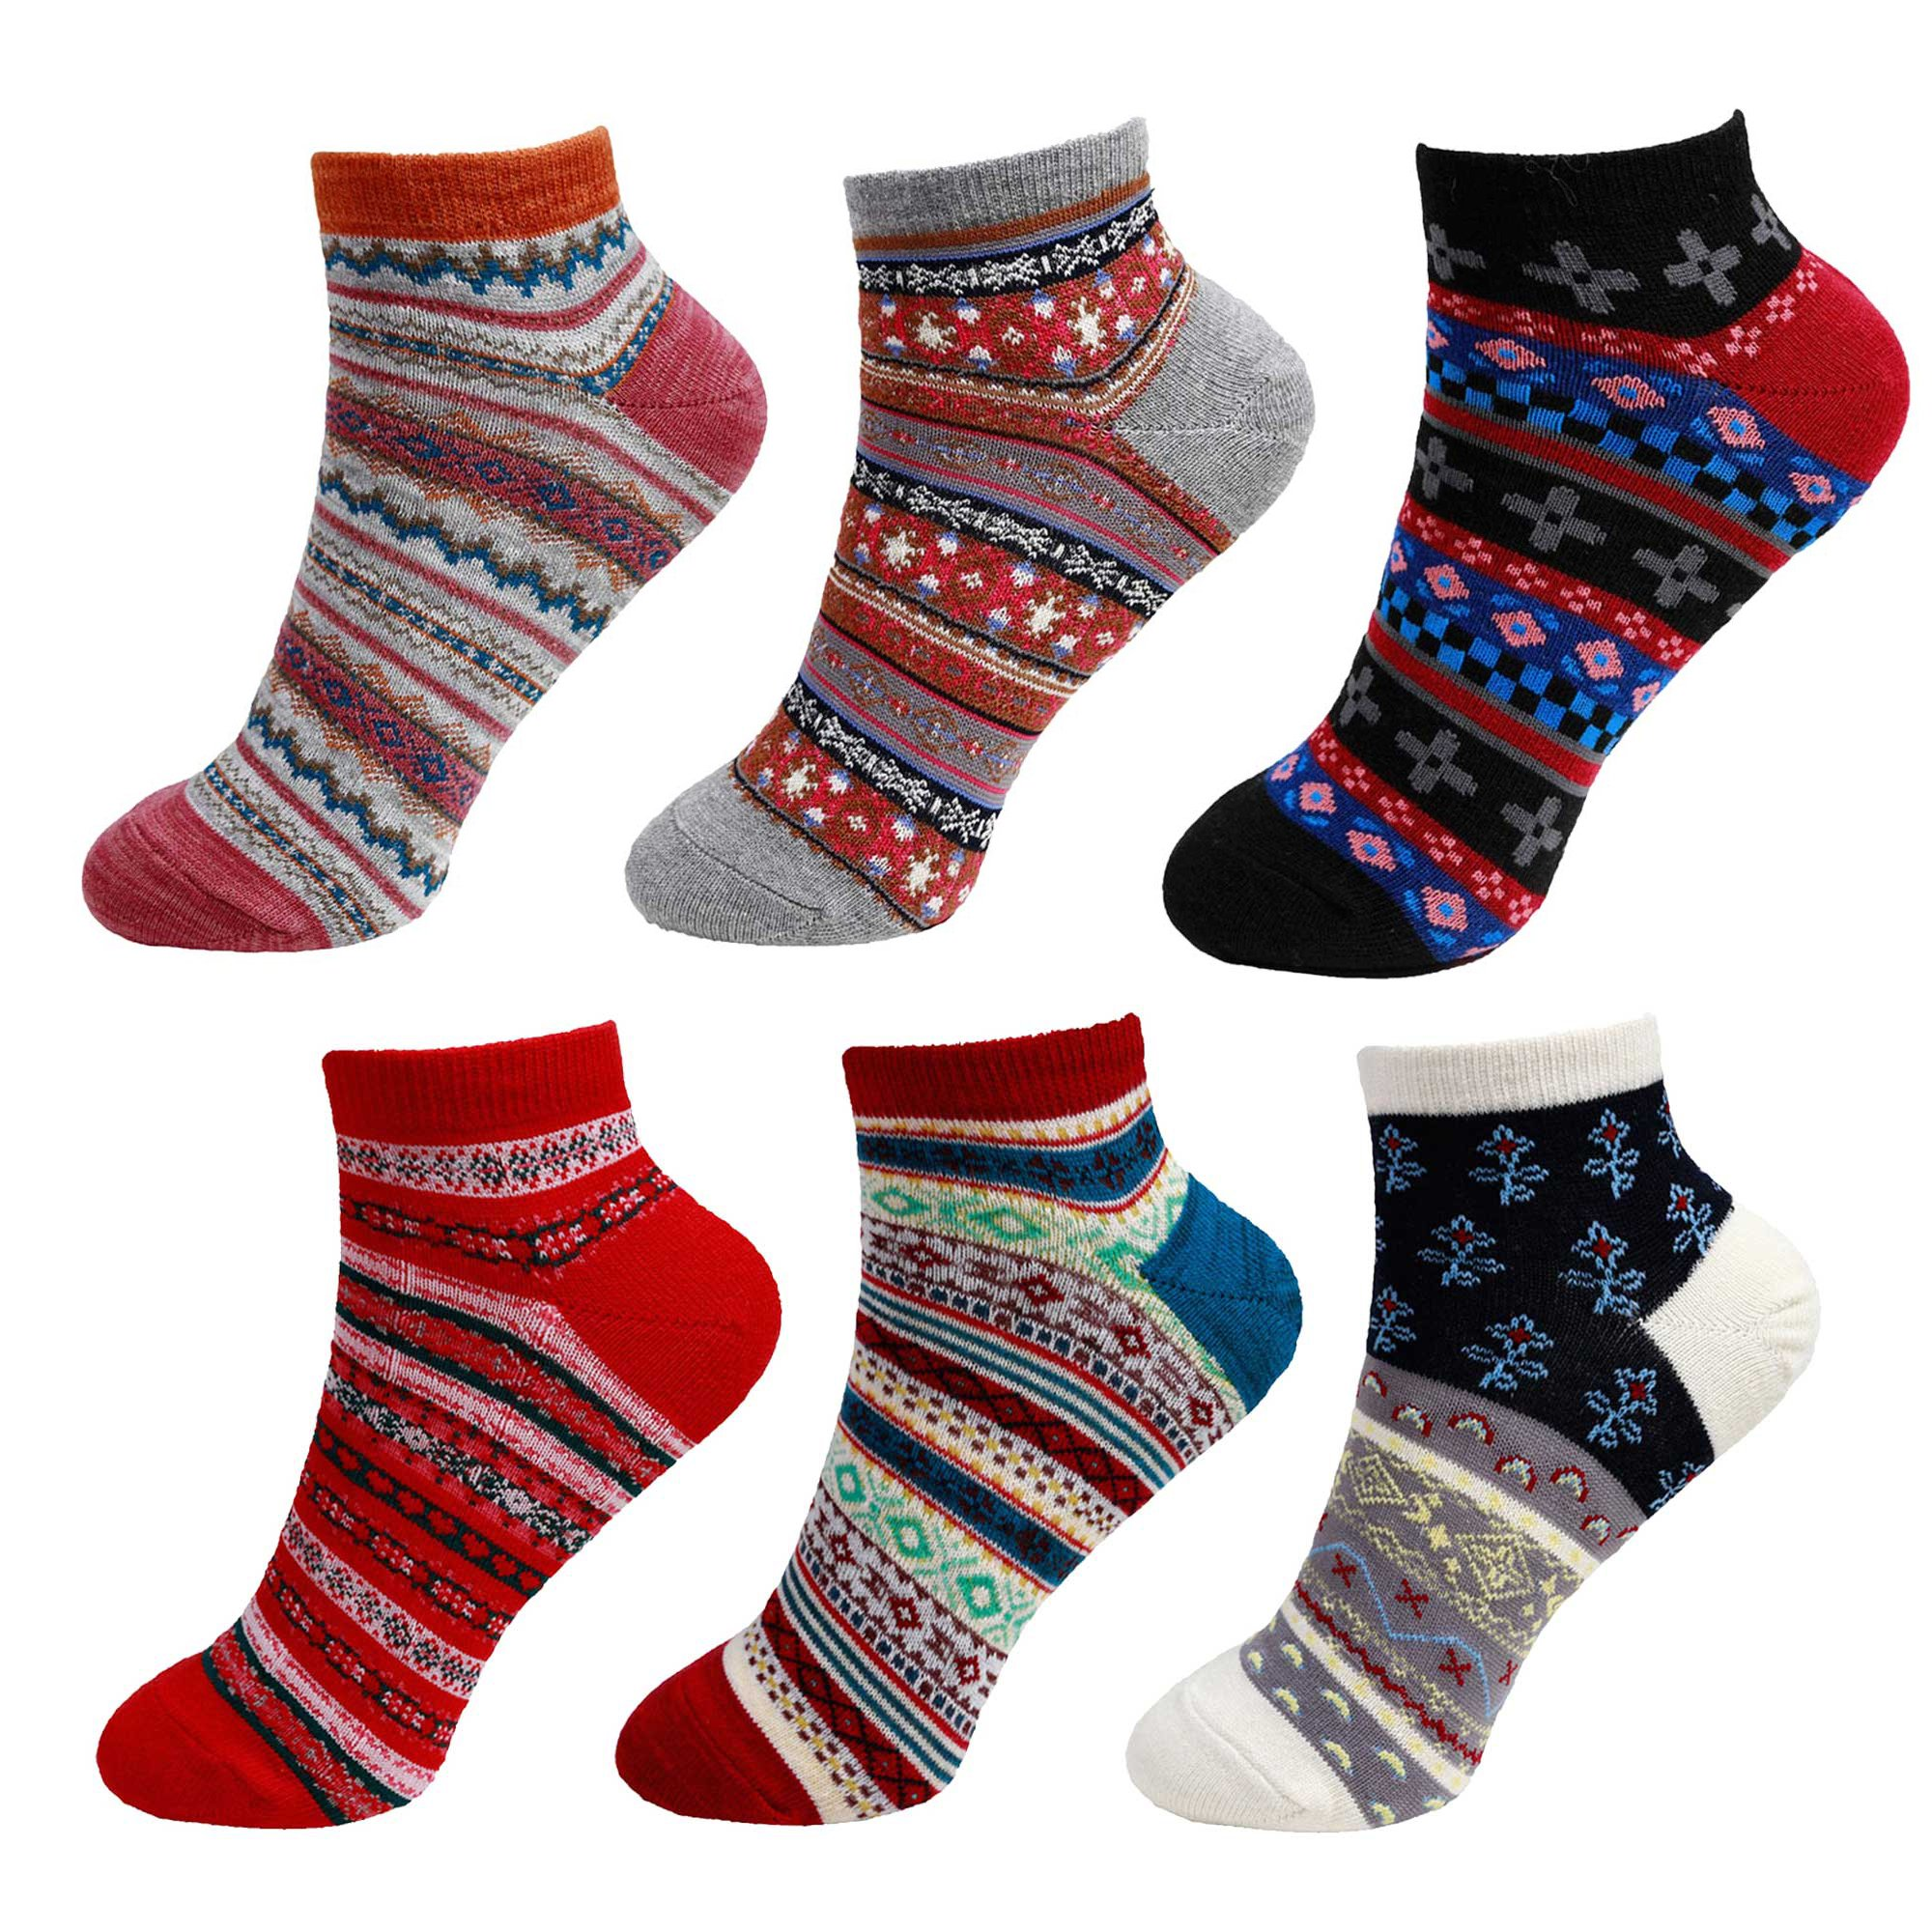 Women's Vintage Style Knitted Colorful Cotton Anklet Socks - 6A, Size XL, 6 prs